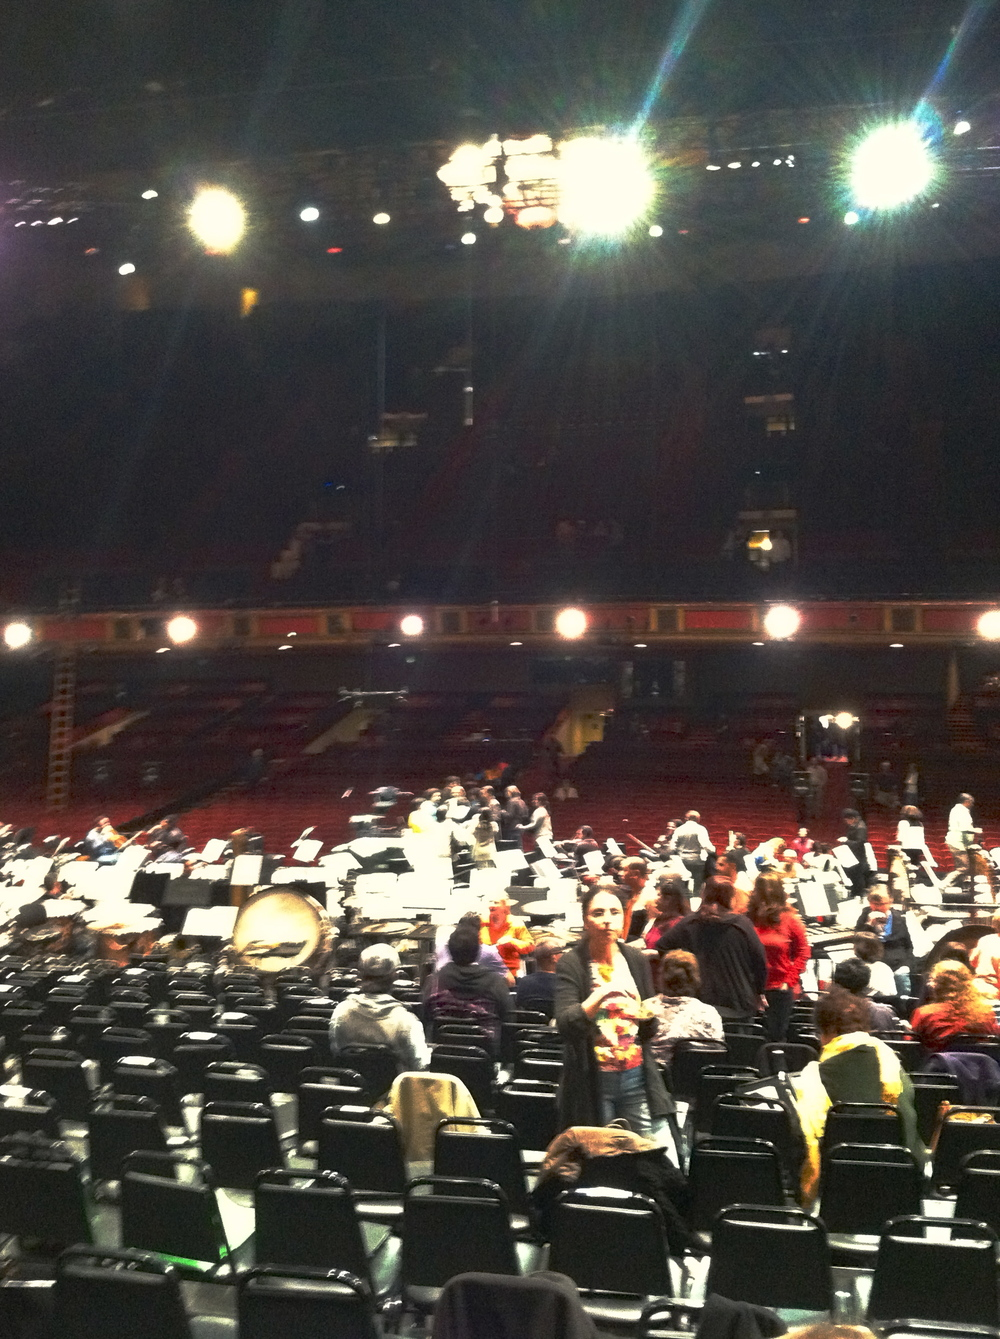 The view from my seat during a rehearsal break - as Dudamel is among the group standing next to the podium, you can get a sense of the distance between the chorus and conductor